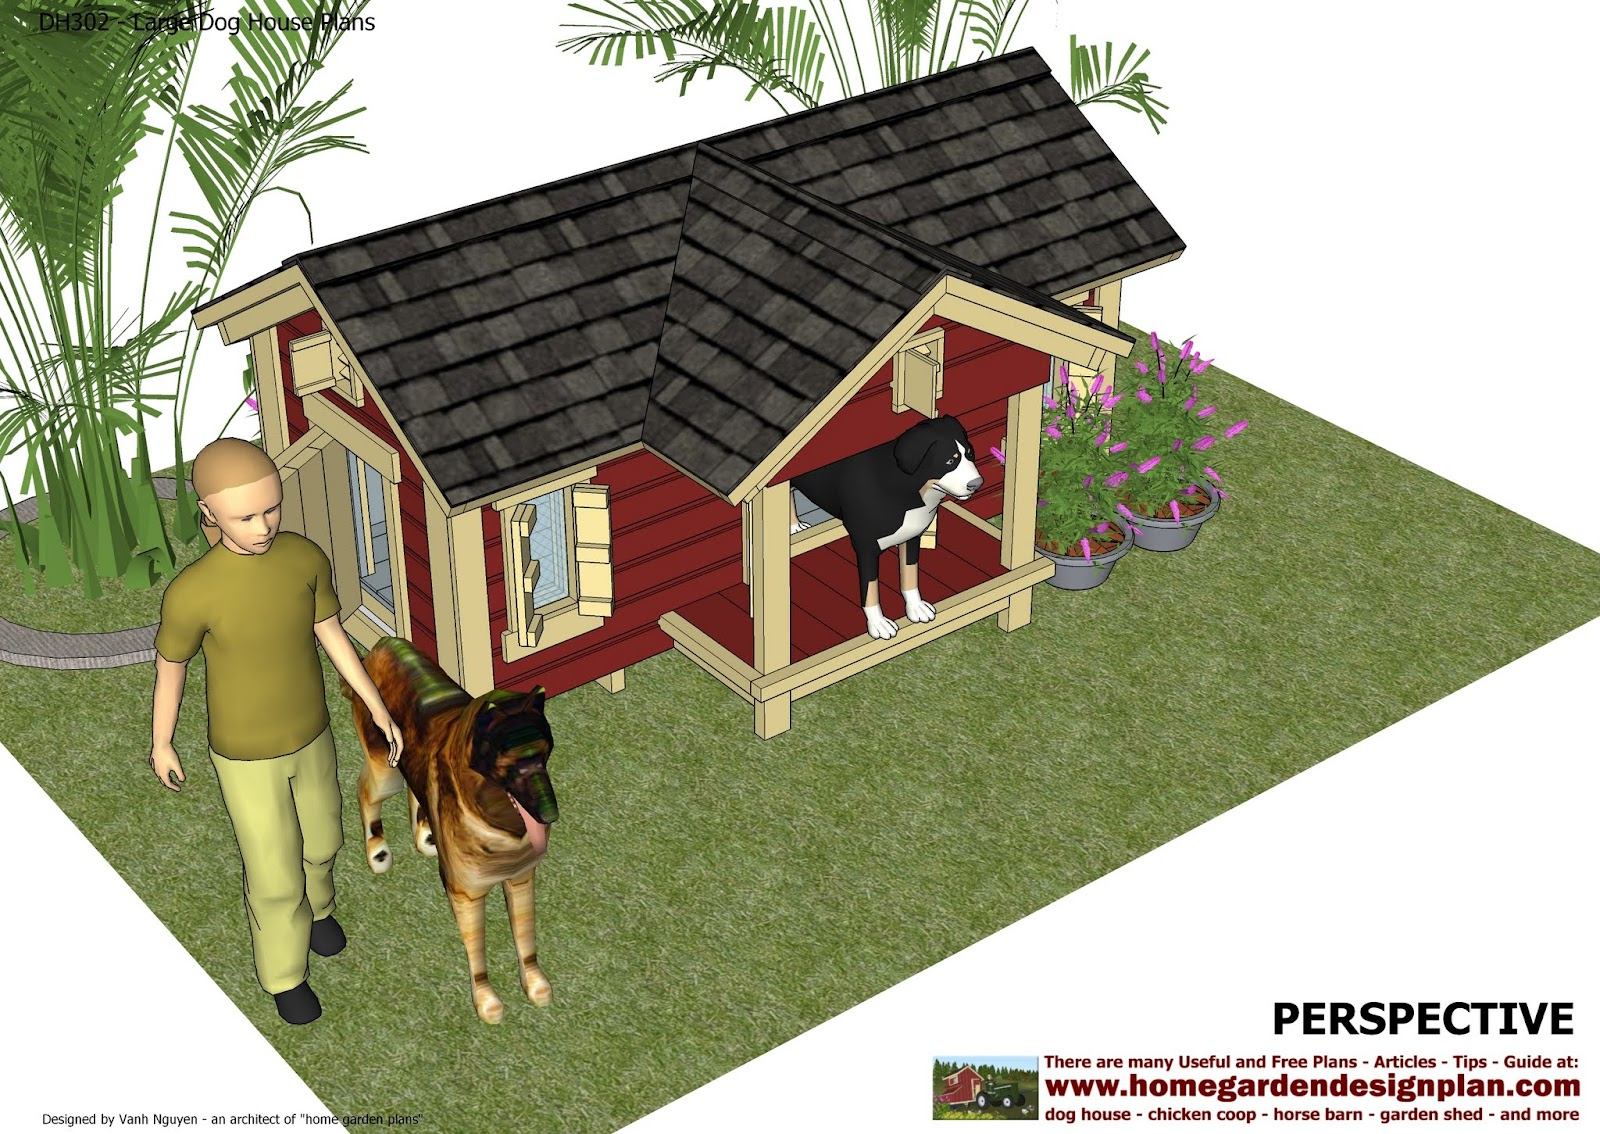 Insulated Dog House Build 8 X 6 Windowless Garden Sheds